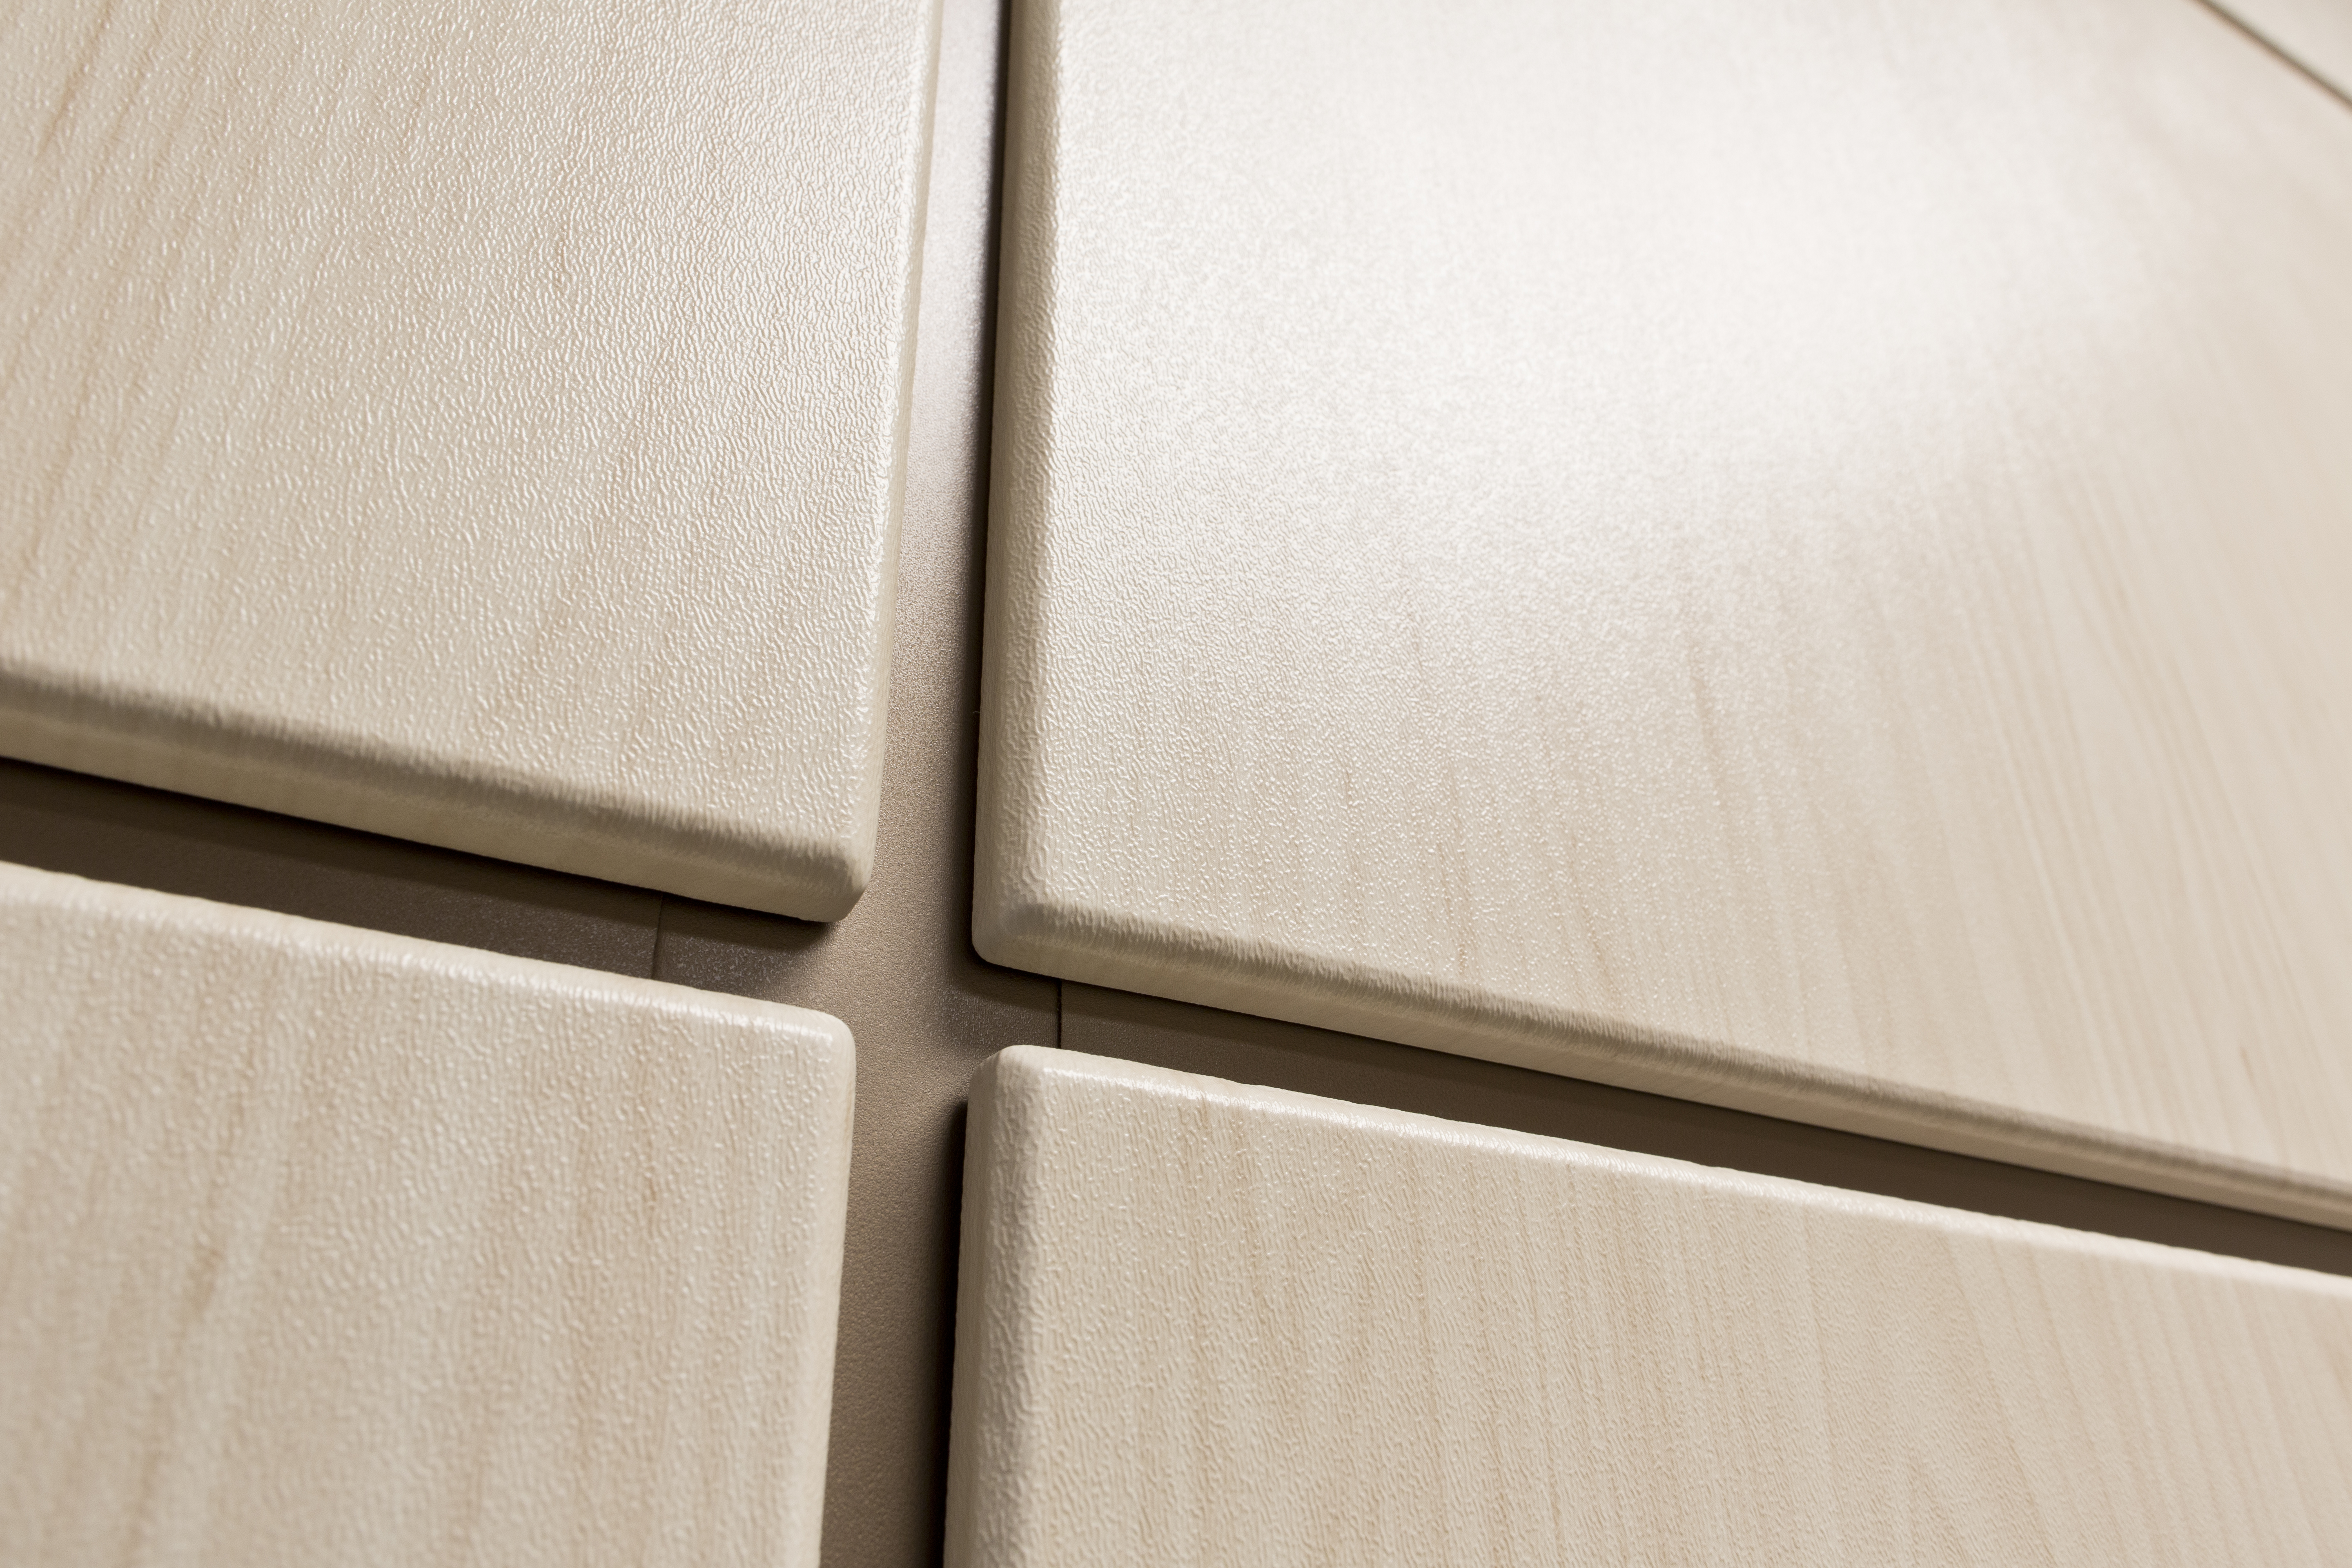 Wall Panel Systems : Palladium wall panel system from inpro